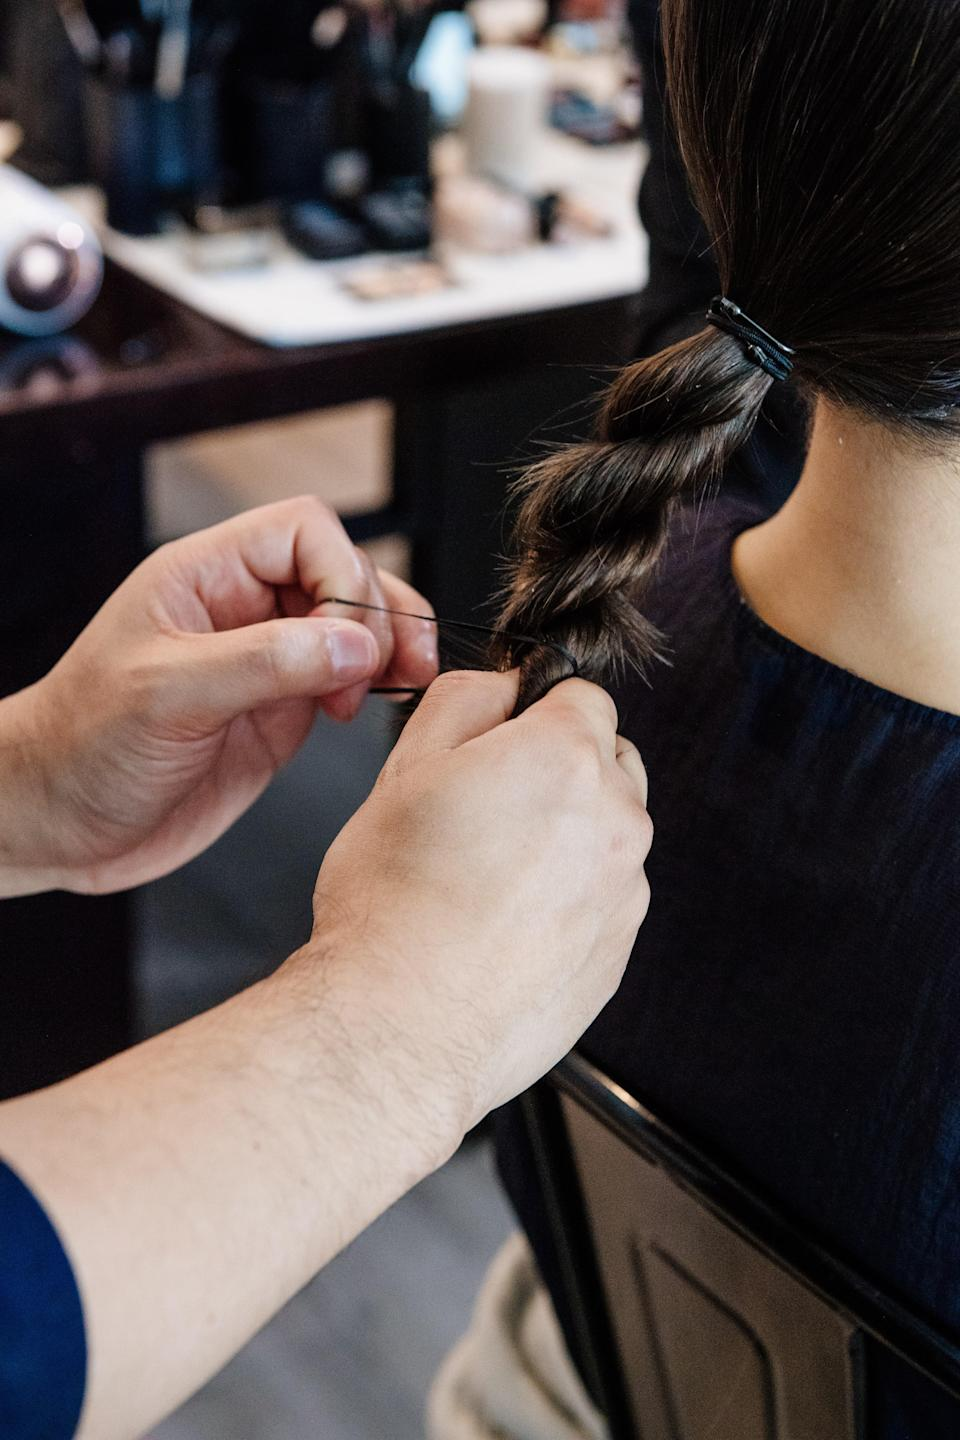 """Hairstylist Derek Yuen twisting Han's lengths into a super smooth chignon with help from <a href=""""https://us.phyto.com/phytodefrisant-anti-frizz-touch-up-care.html"""" rel=""""nofollow noopener"""" target=""""_blank"""" data-ylk=""""slk:Phyto's Phytodefrisant Anti-Frizz Touch-Up Care"""" class=""""link rapid-noclick-resp"""">Phyto's Phytodefrisant Anti-Frizz Touch-Up Care</a>."""